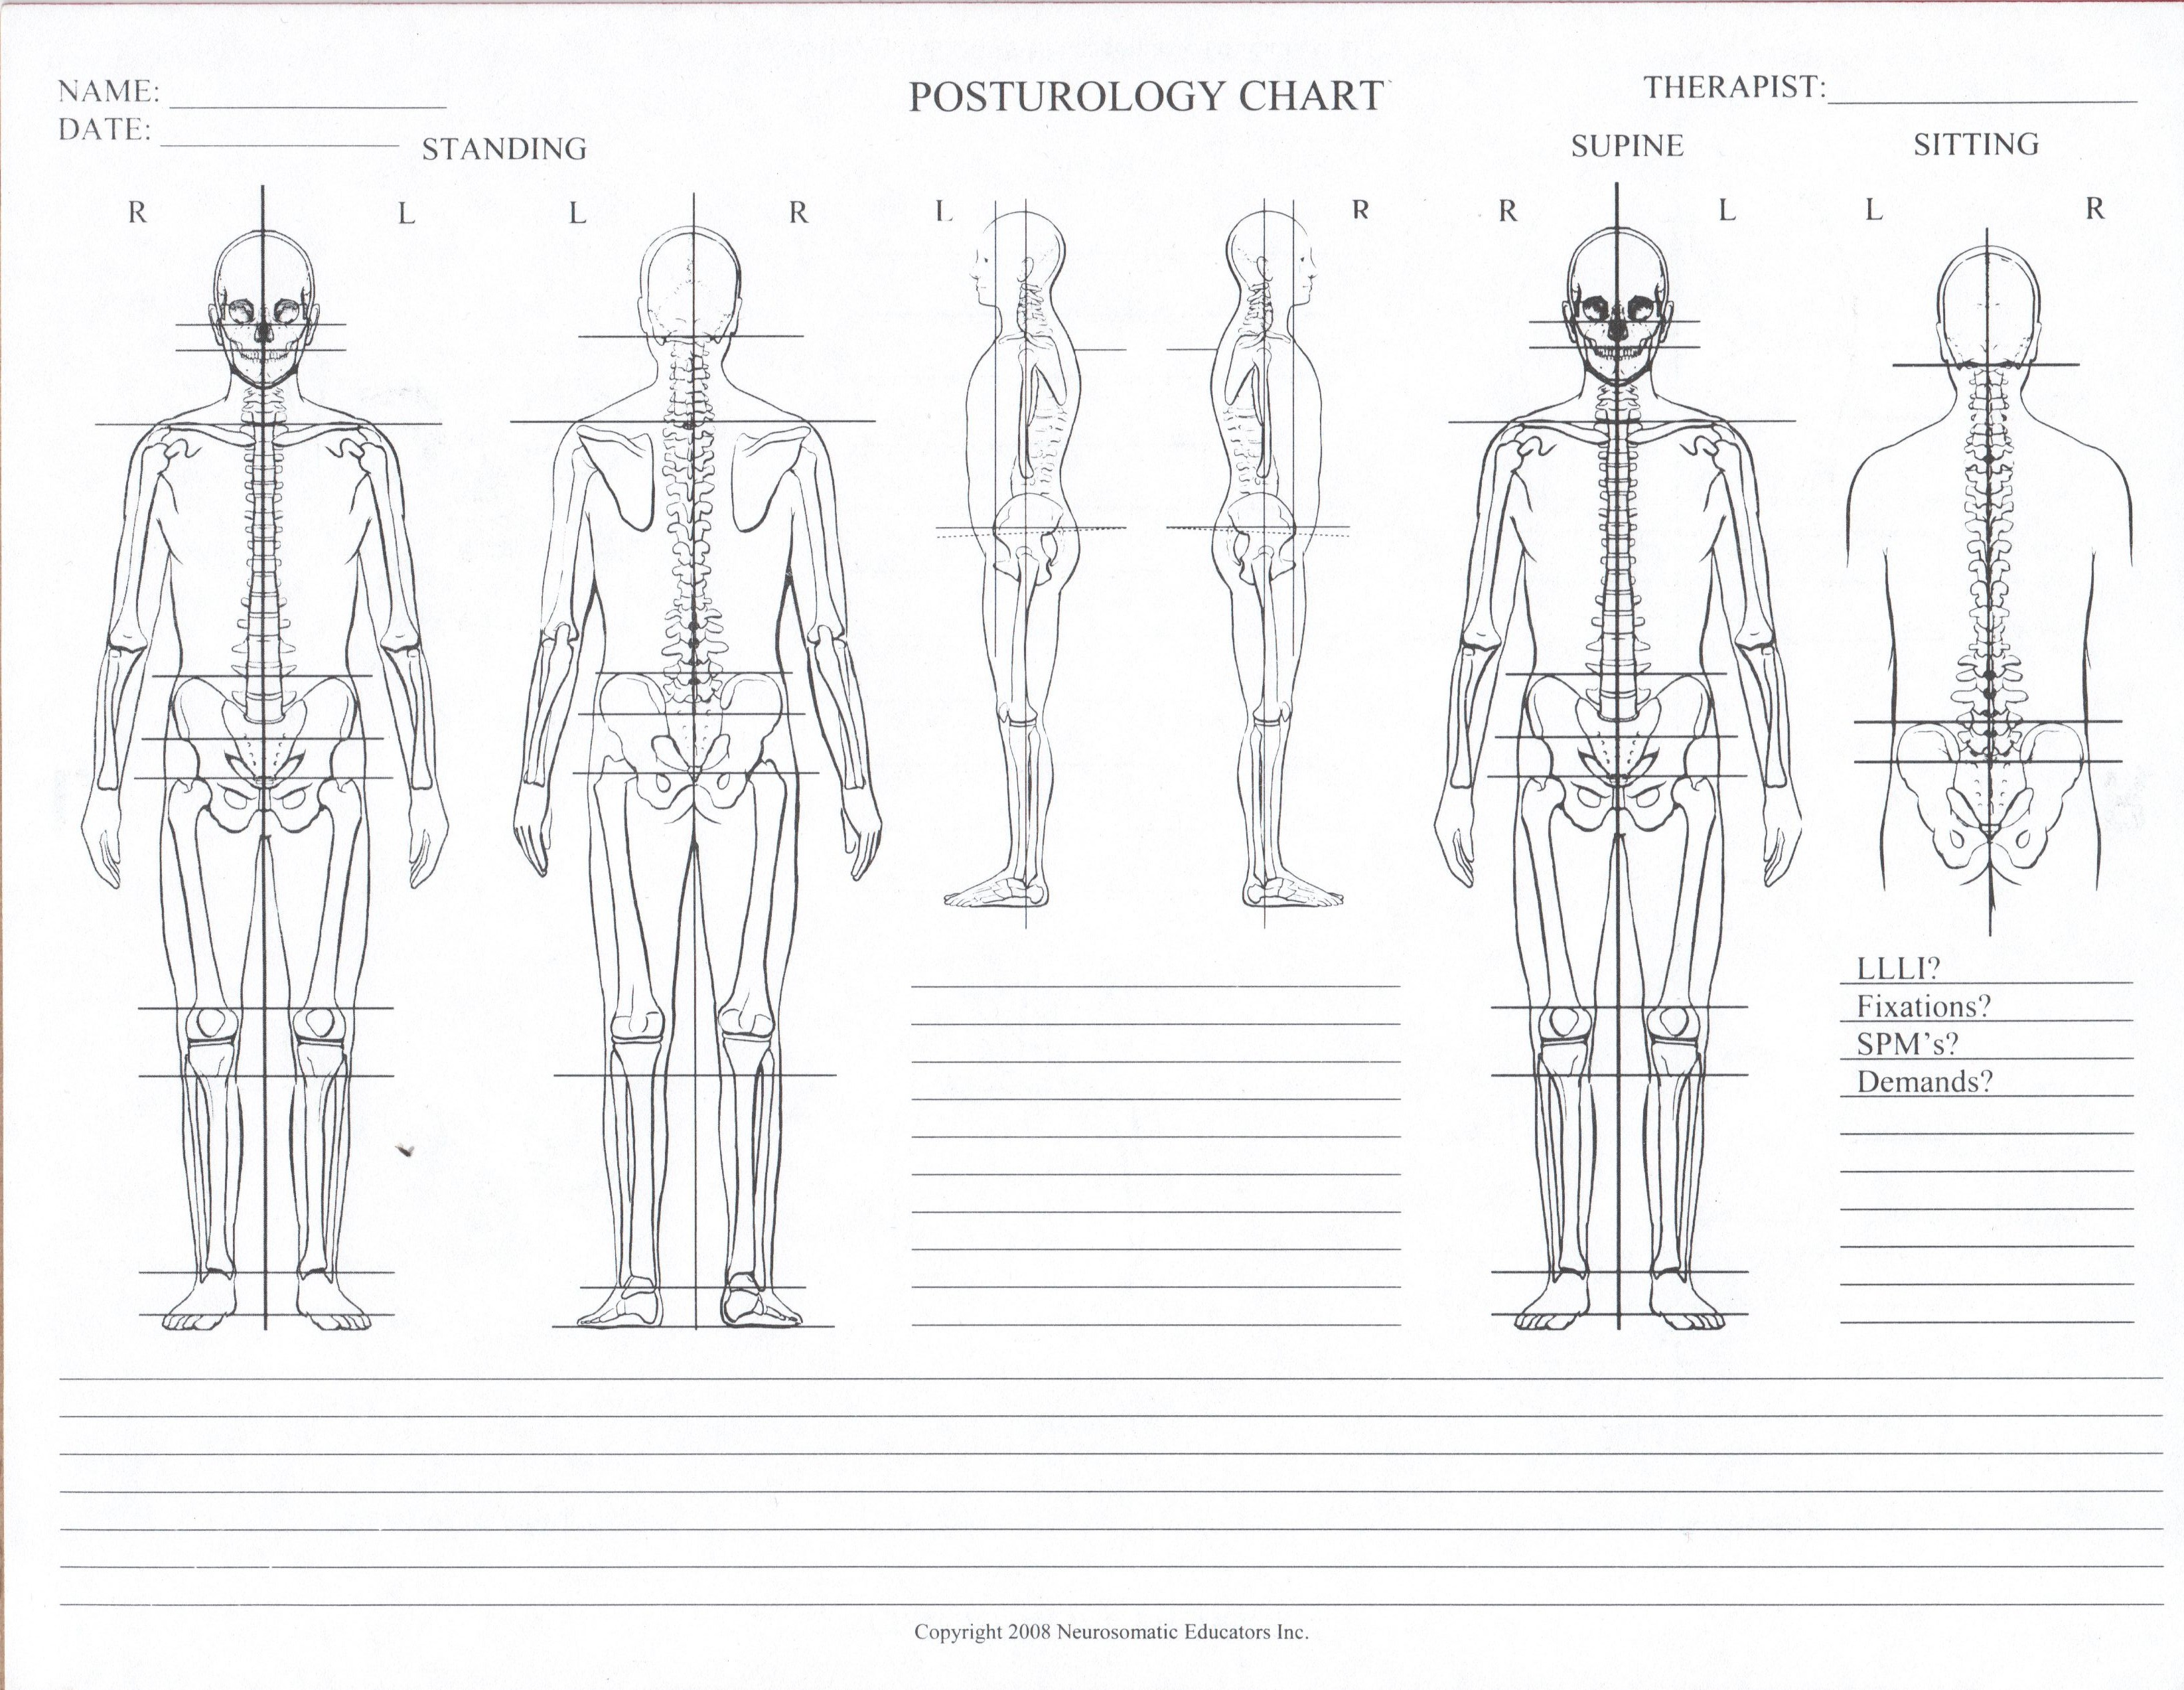 blank body chart - free download